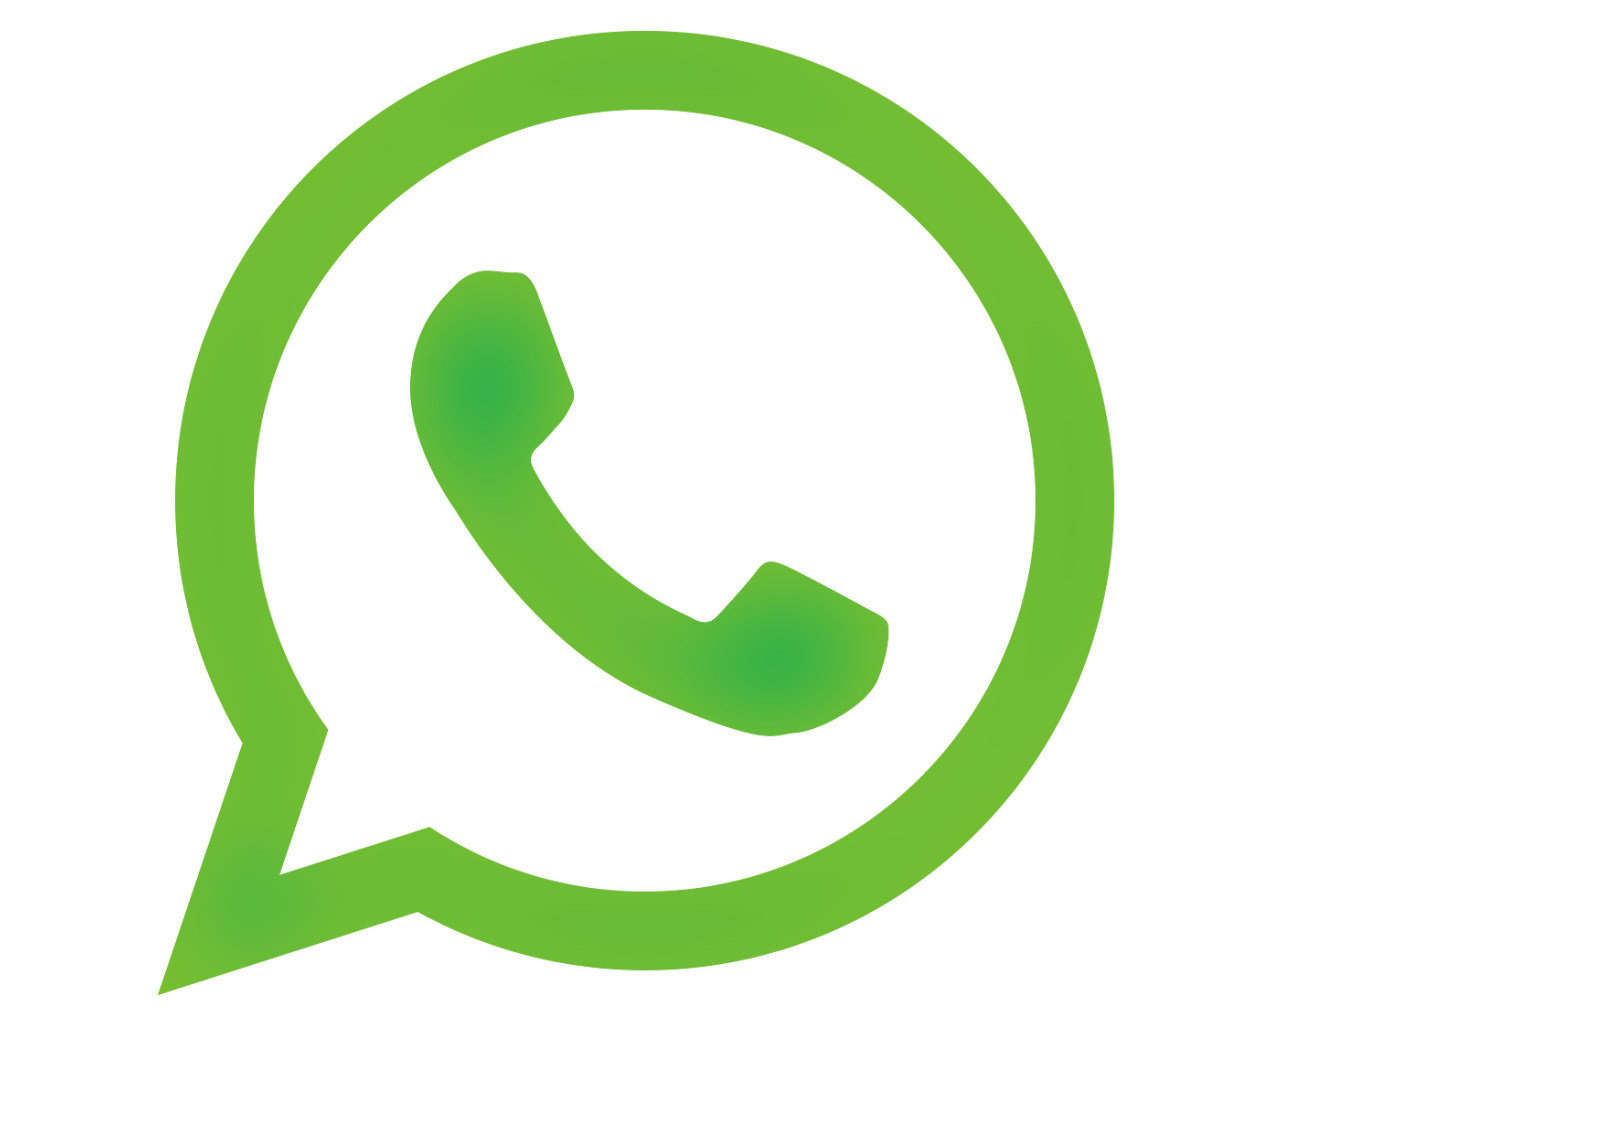 Whatsapp Vector Logo 2 - What